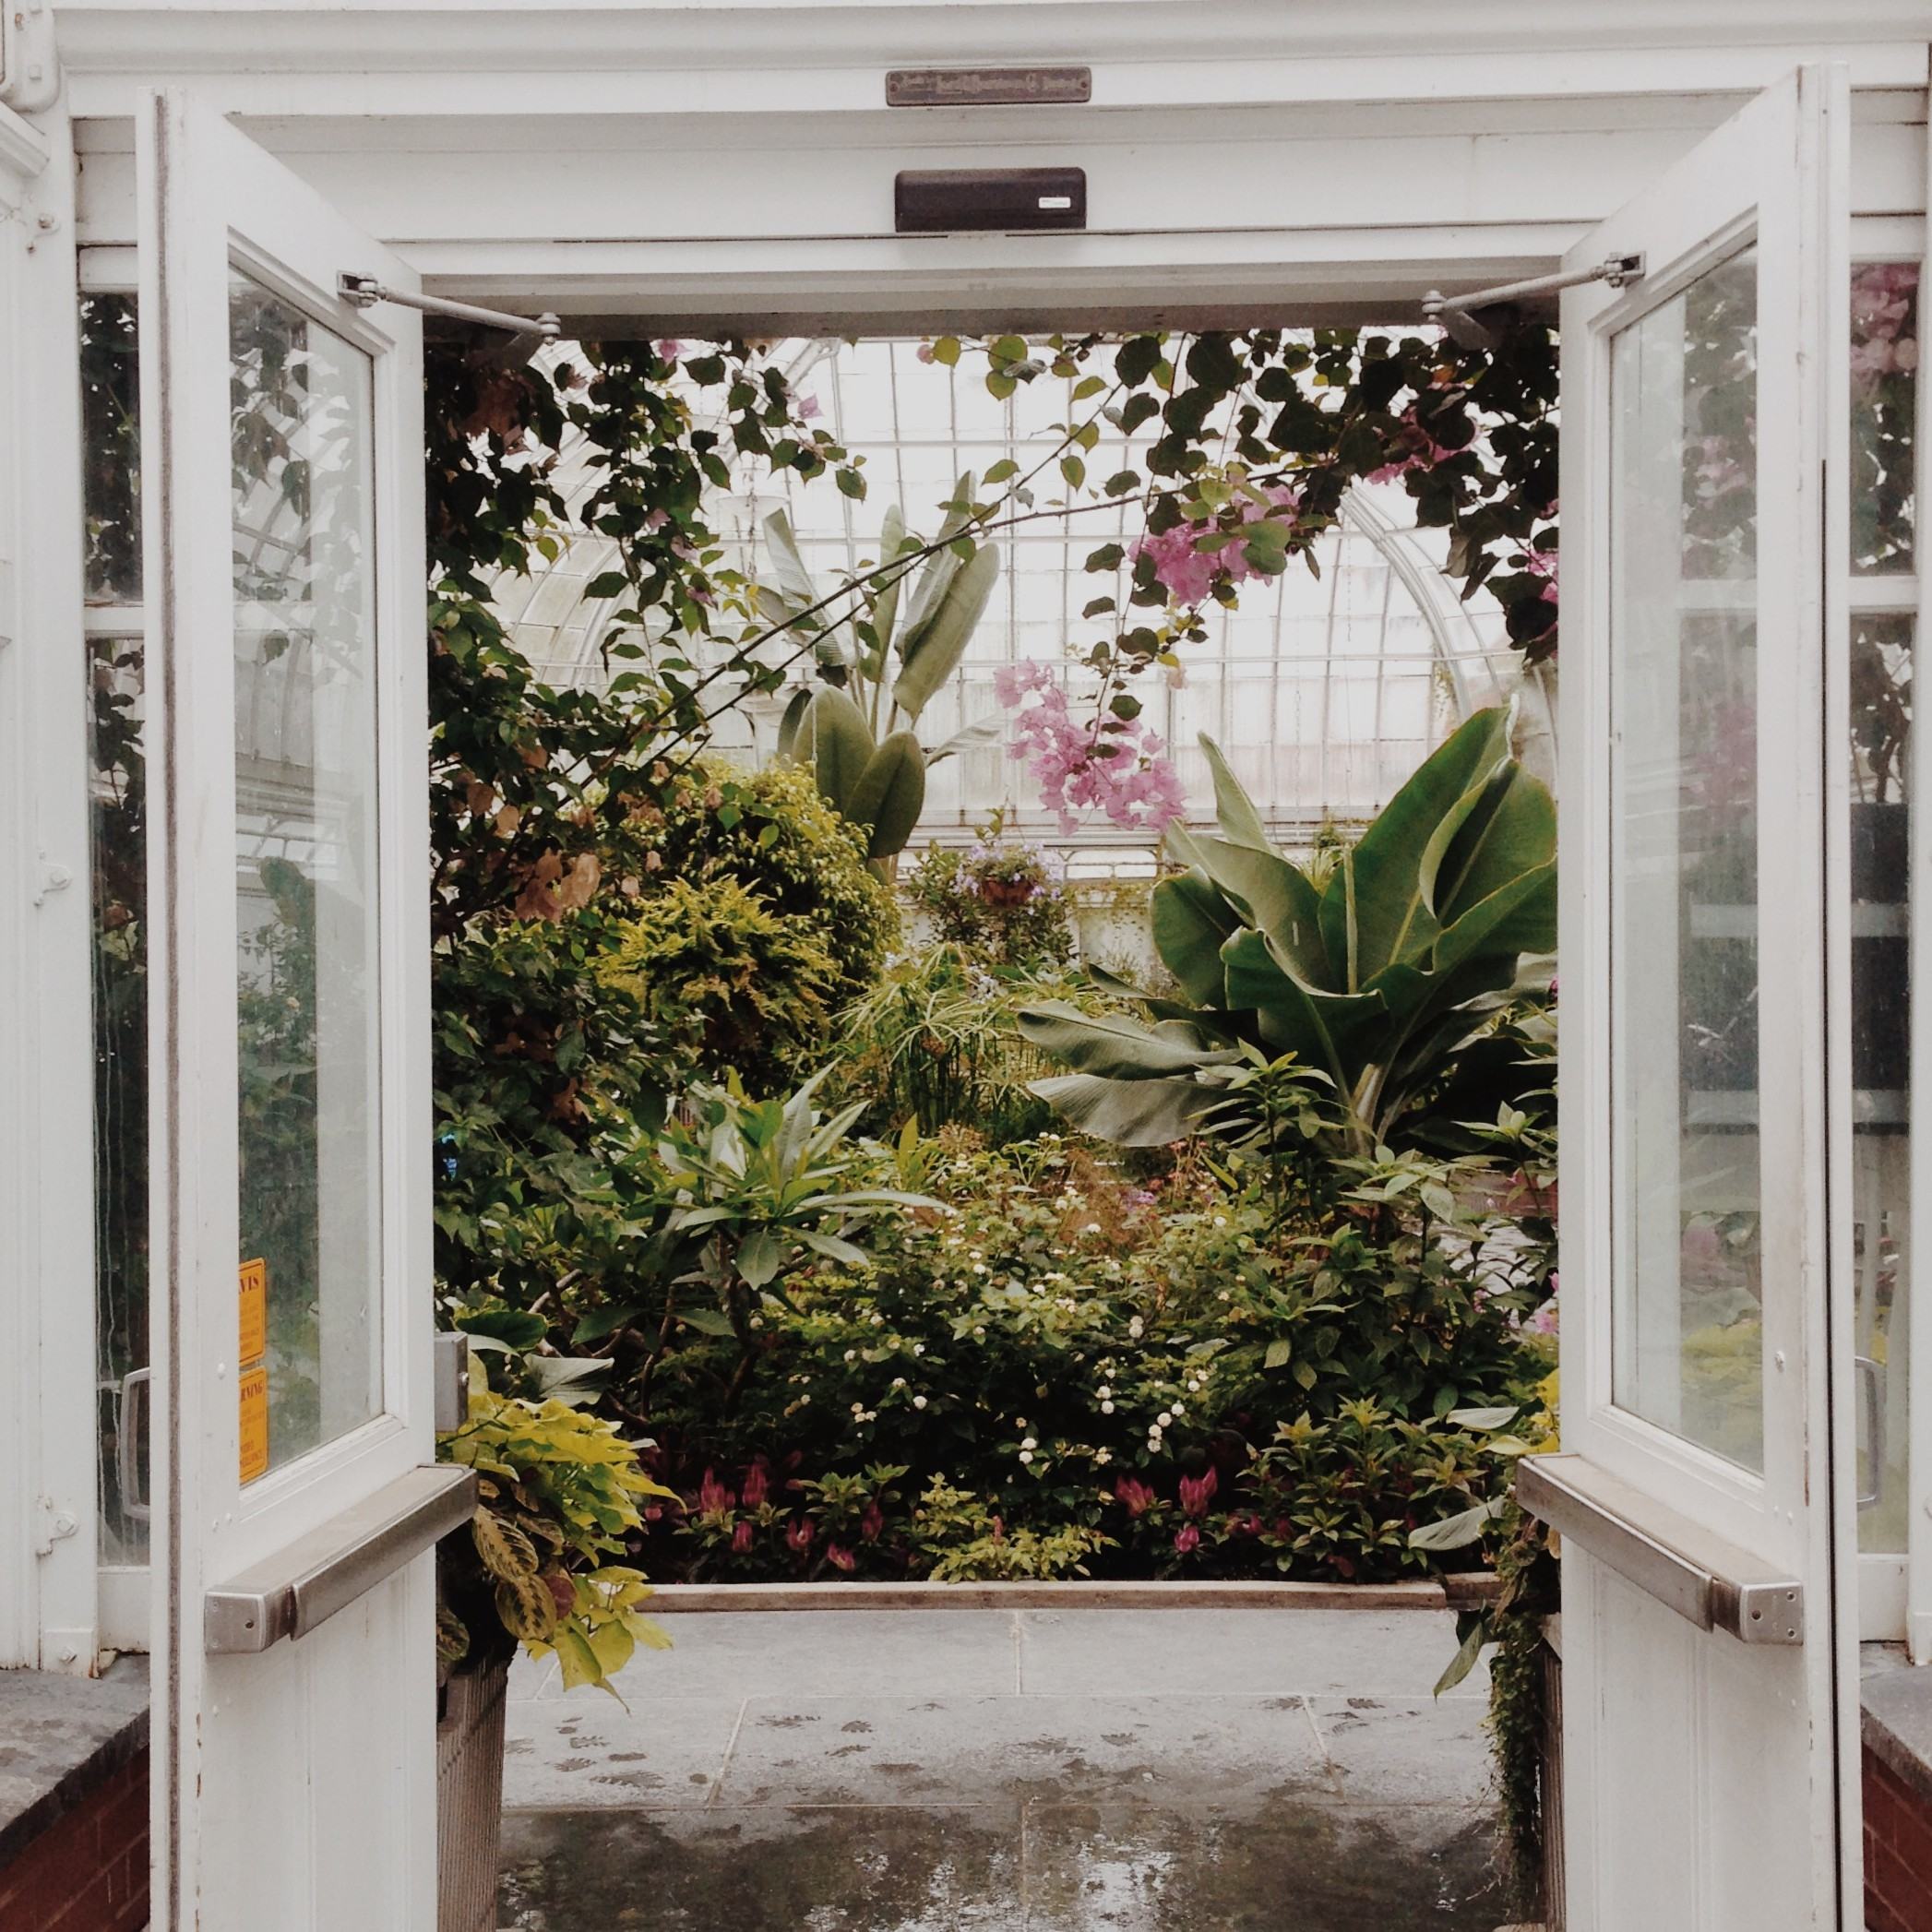 Entering paradiso — The Westmount Greenhouse